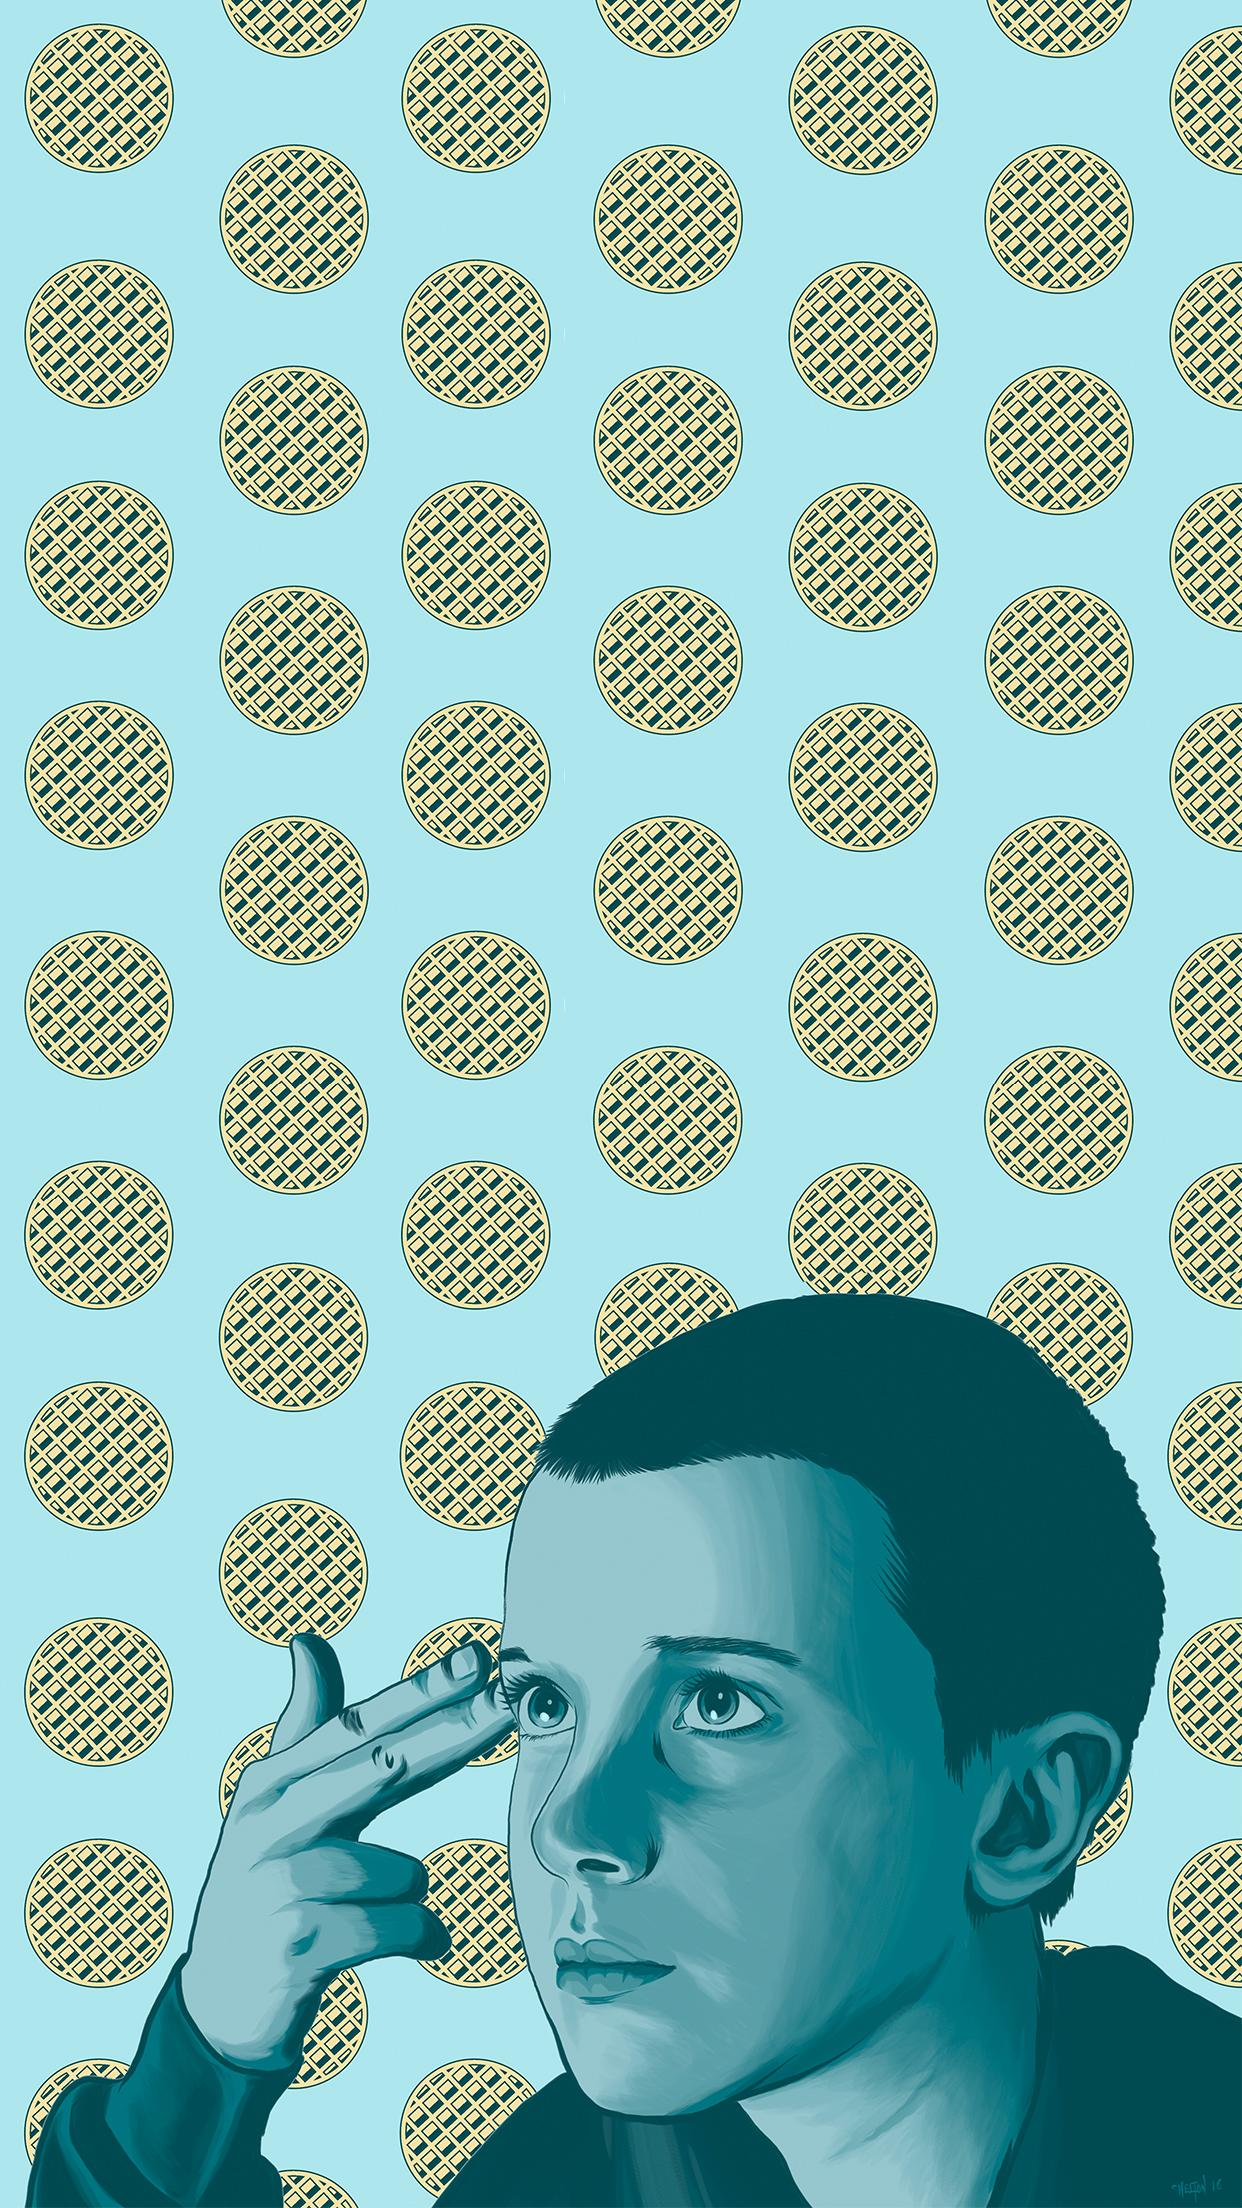 89 Stranger Things Eleven Wallpapers On Wallpapersafari